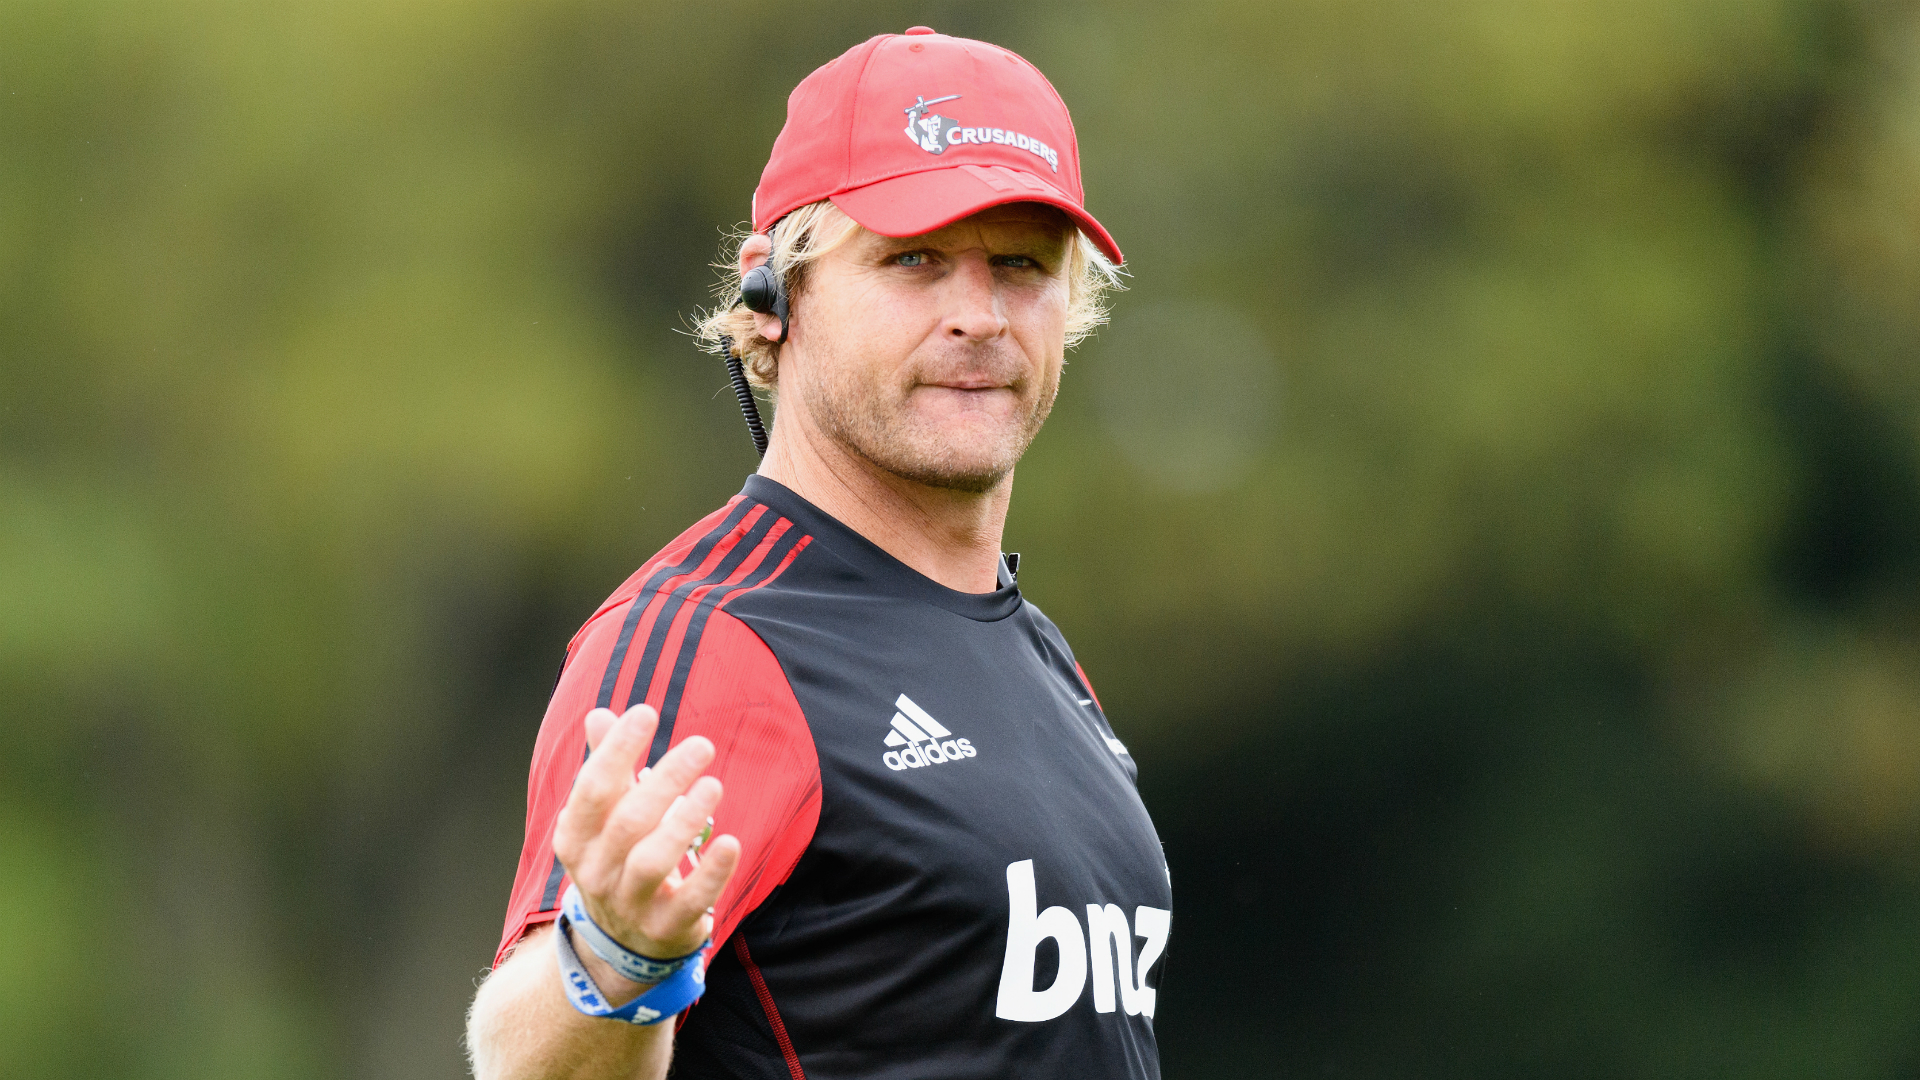 Crusaders coach Robertson signs on for two more seasons